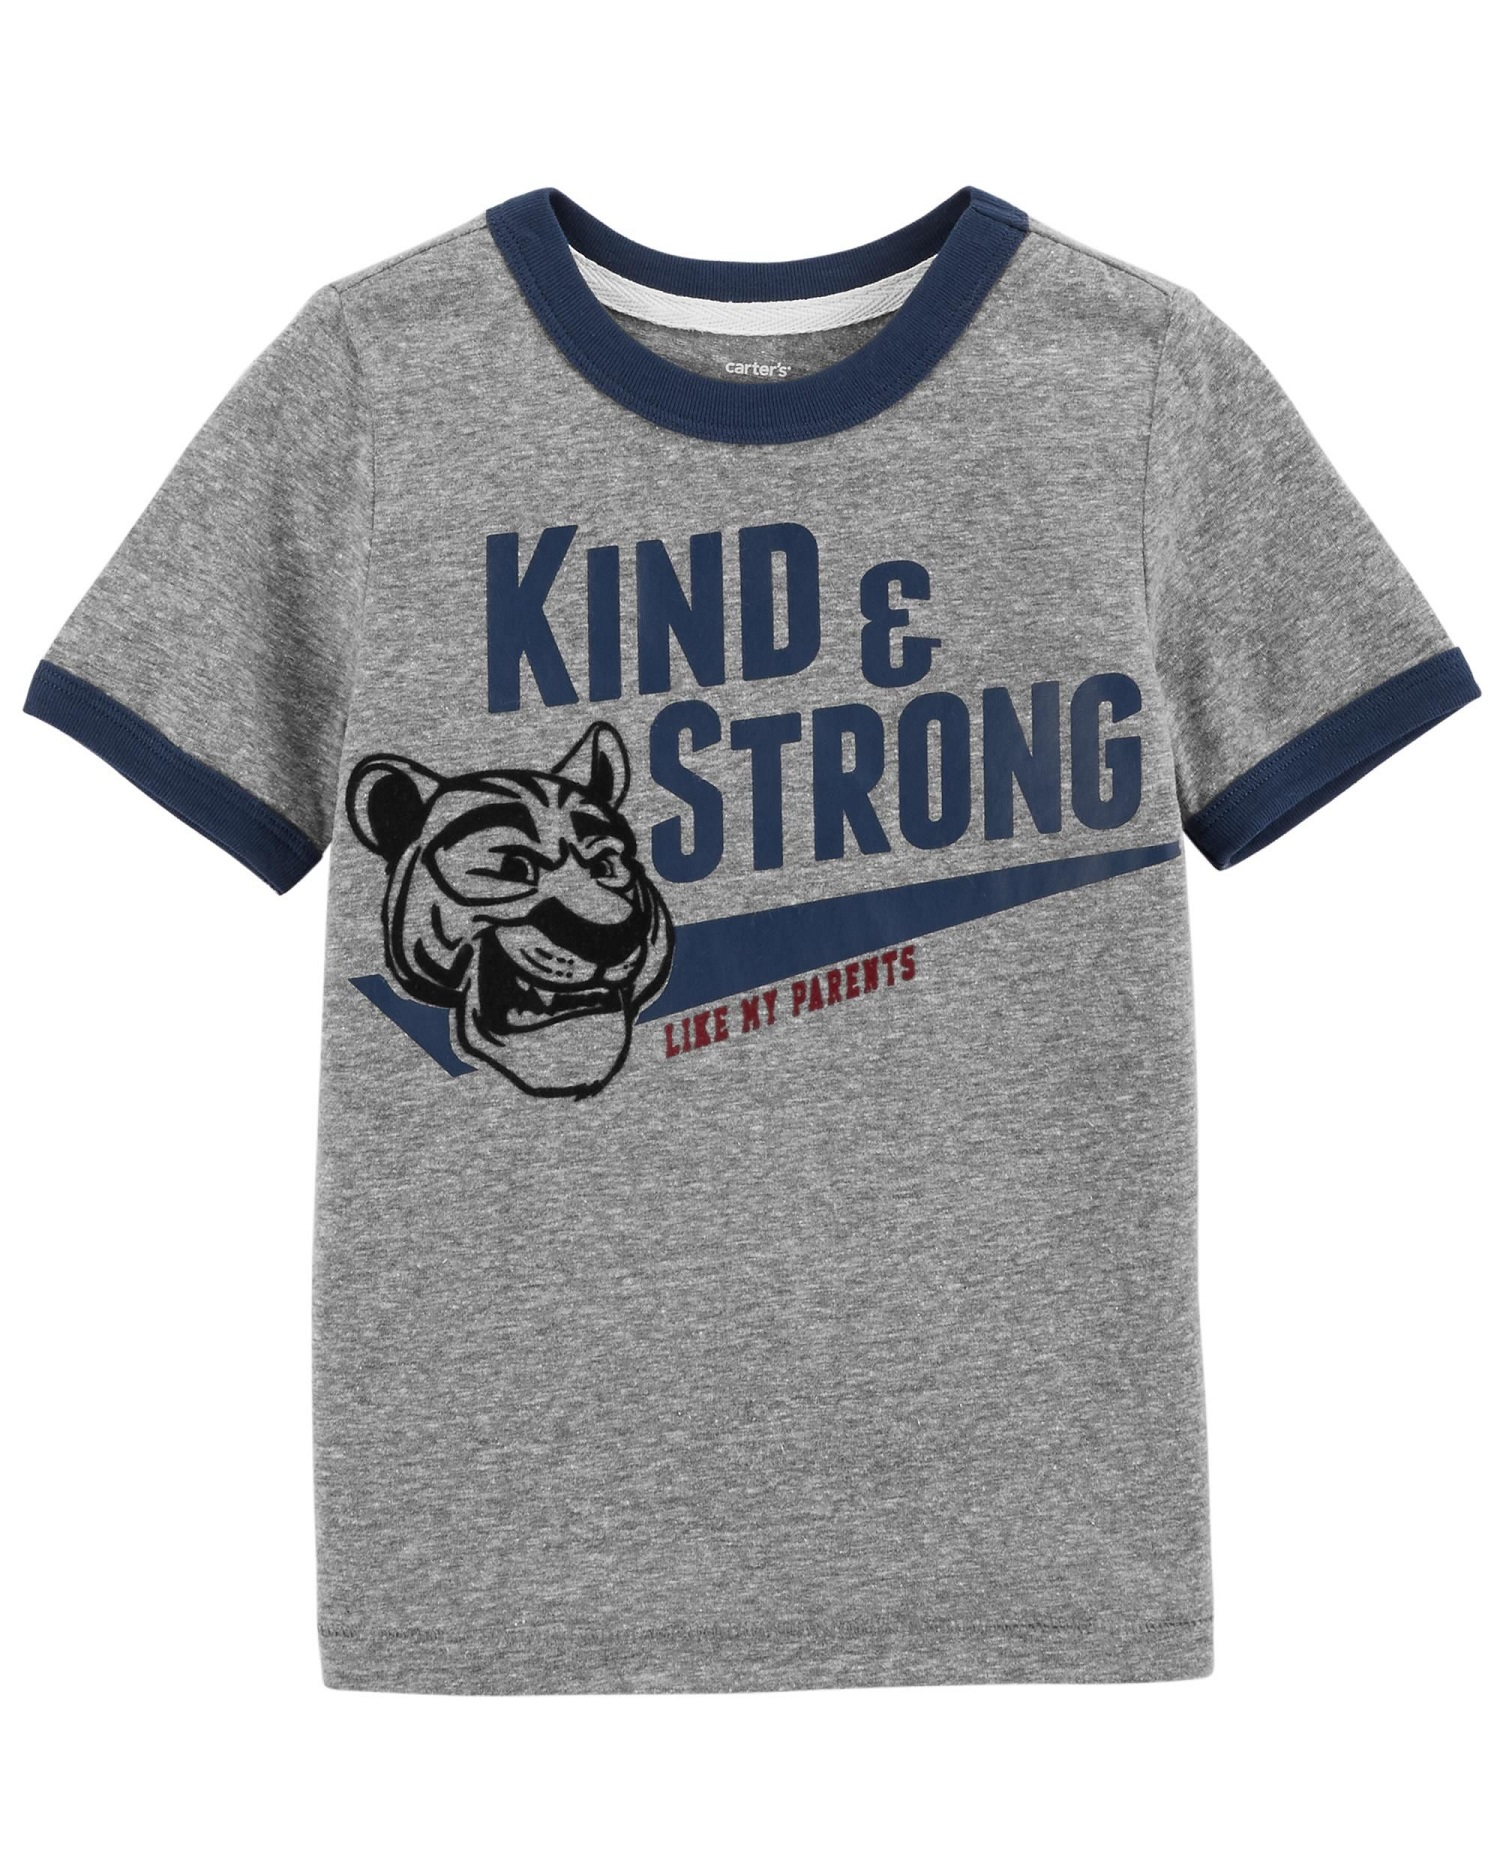 Carter's Little Boys' Kind & Strong Snow Yarn Ringer Tee, 2-Toddler